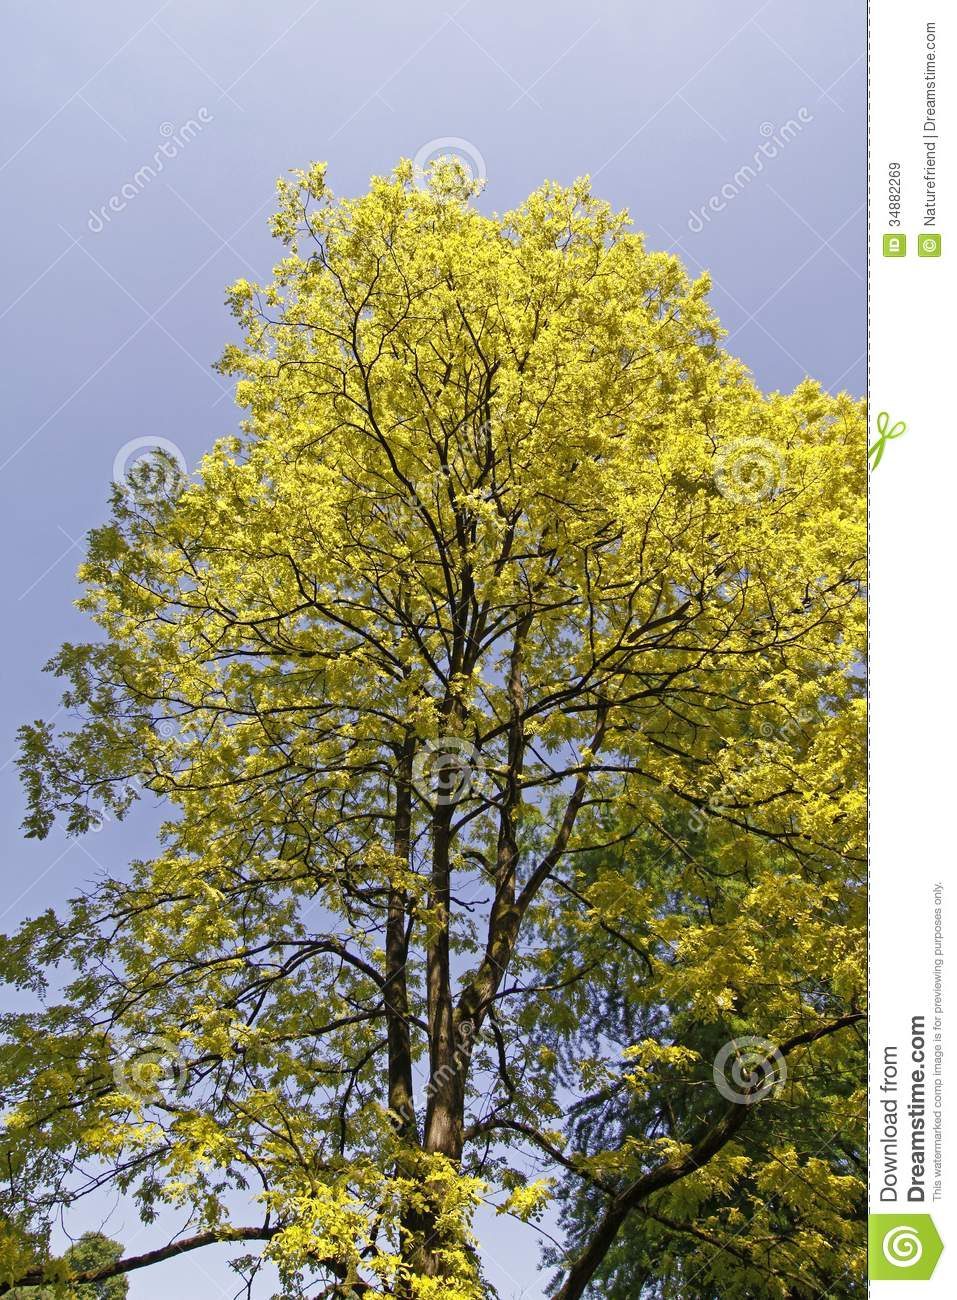 False Acacia, Black Locust, Robinia Pseudoacacia From Germany.